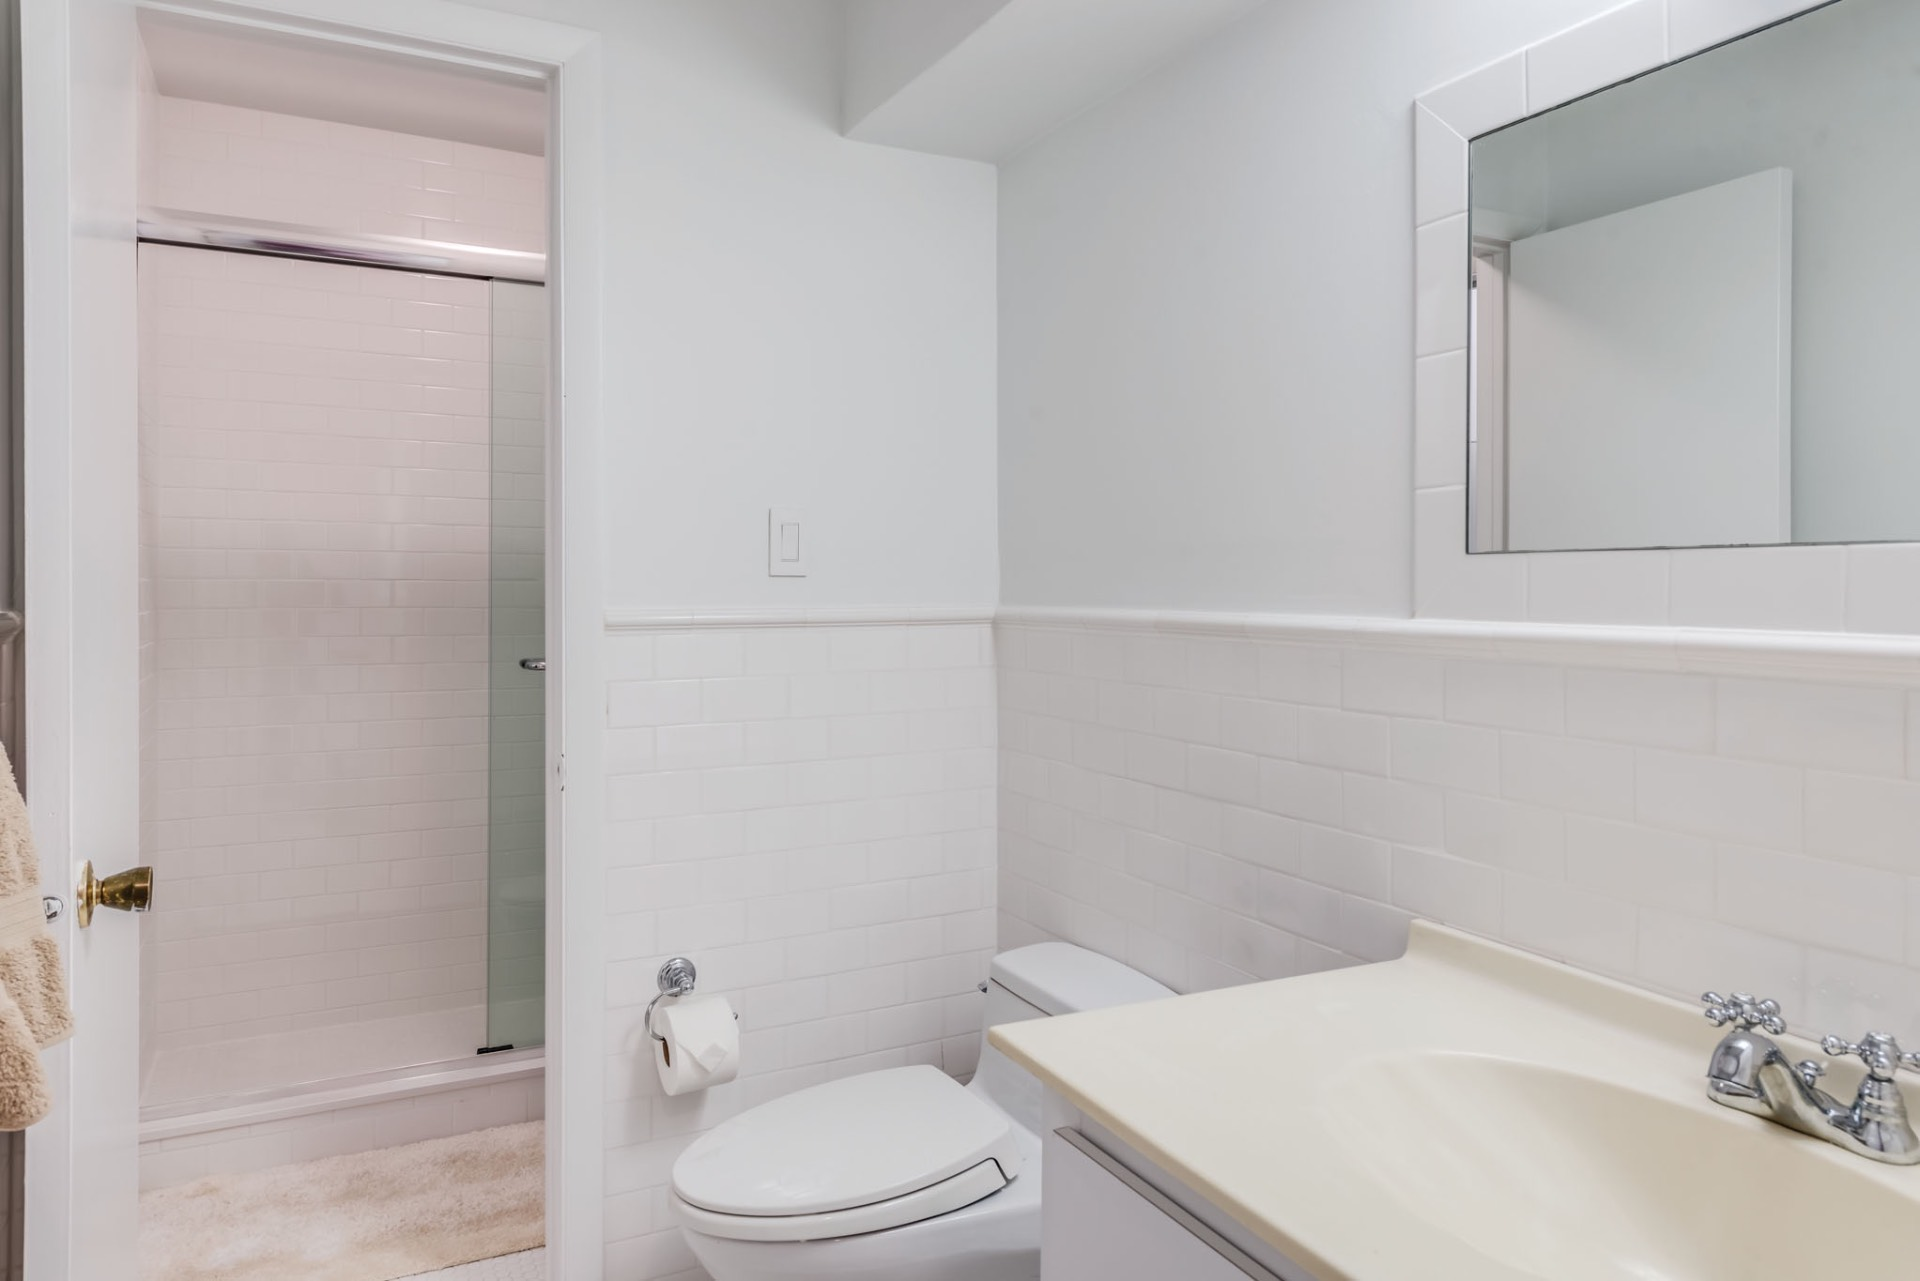 Additional photo for property listing at Southampton Village Condo Newly Listed 10 Leland Lane #46,  Southampton, Nueva York